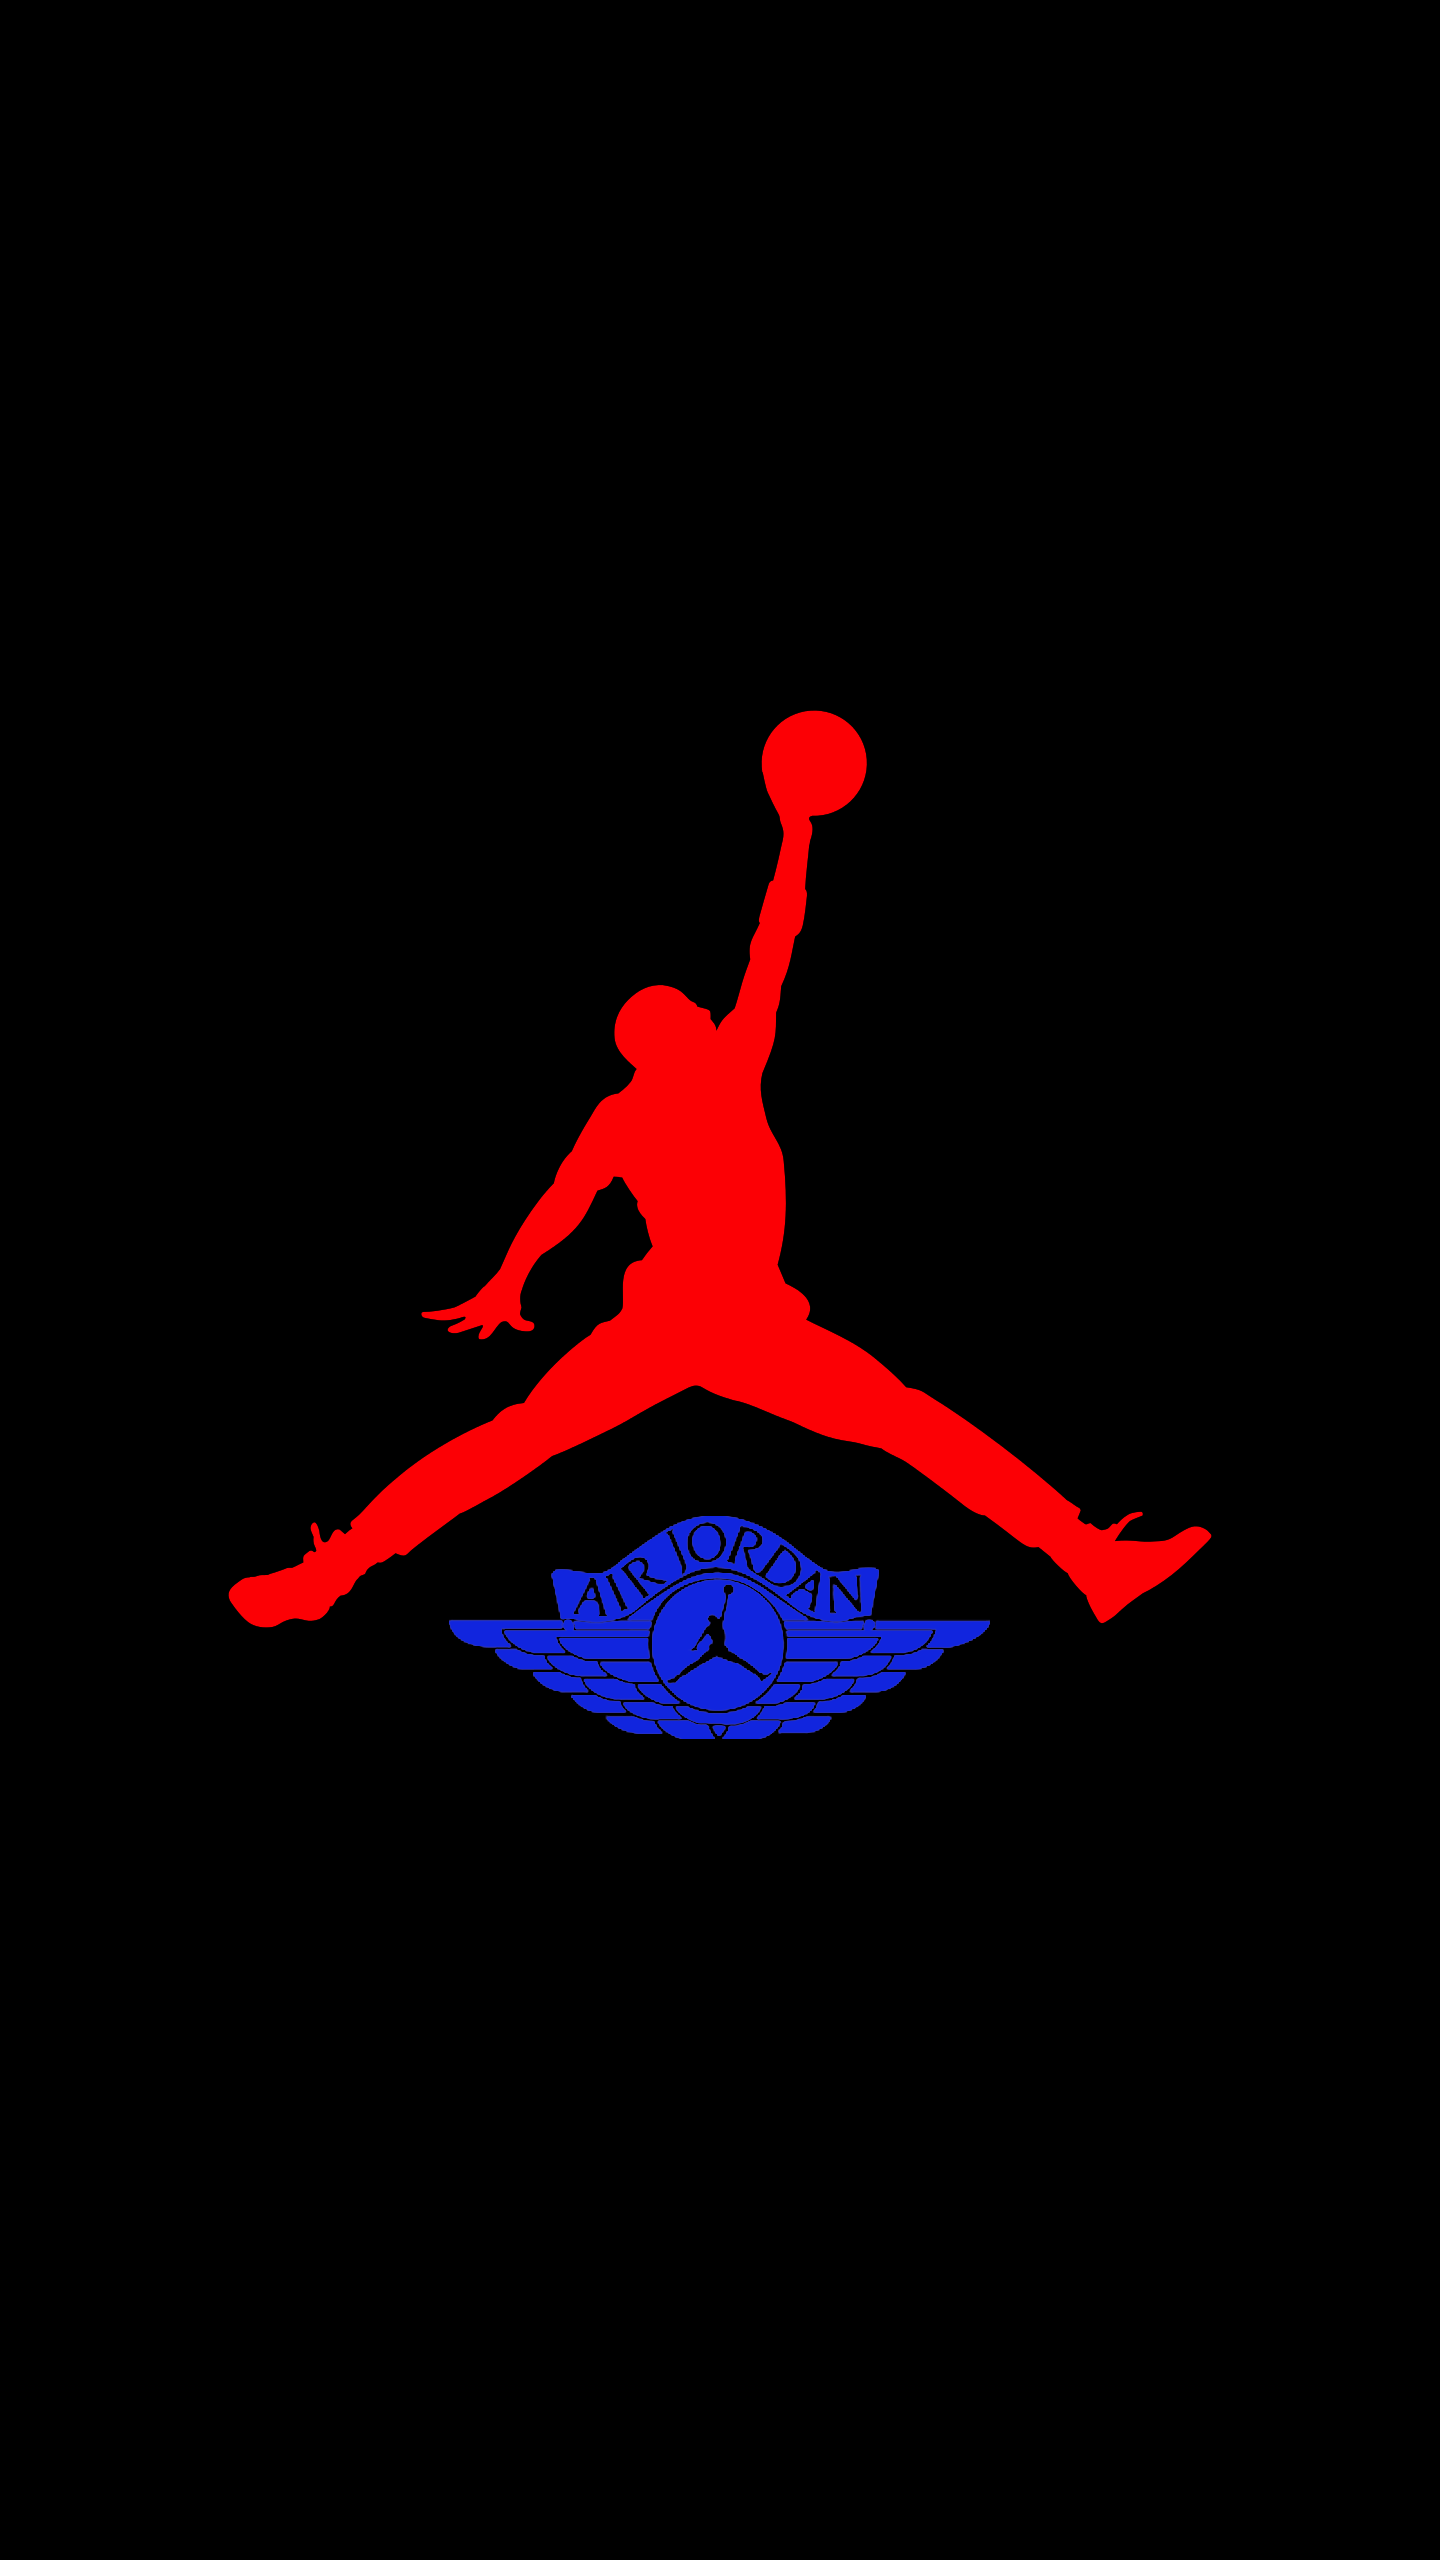 Air Jordan 4k AMOLED Wallpapers Made By Yuval Zarchi in Photoshop